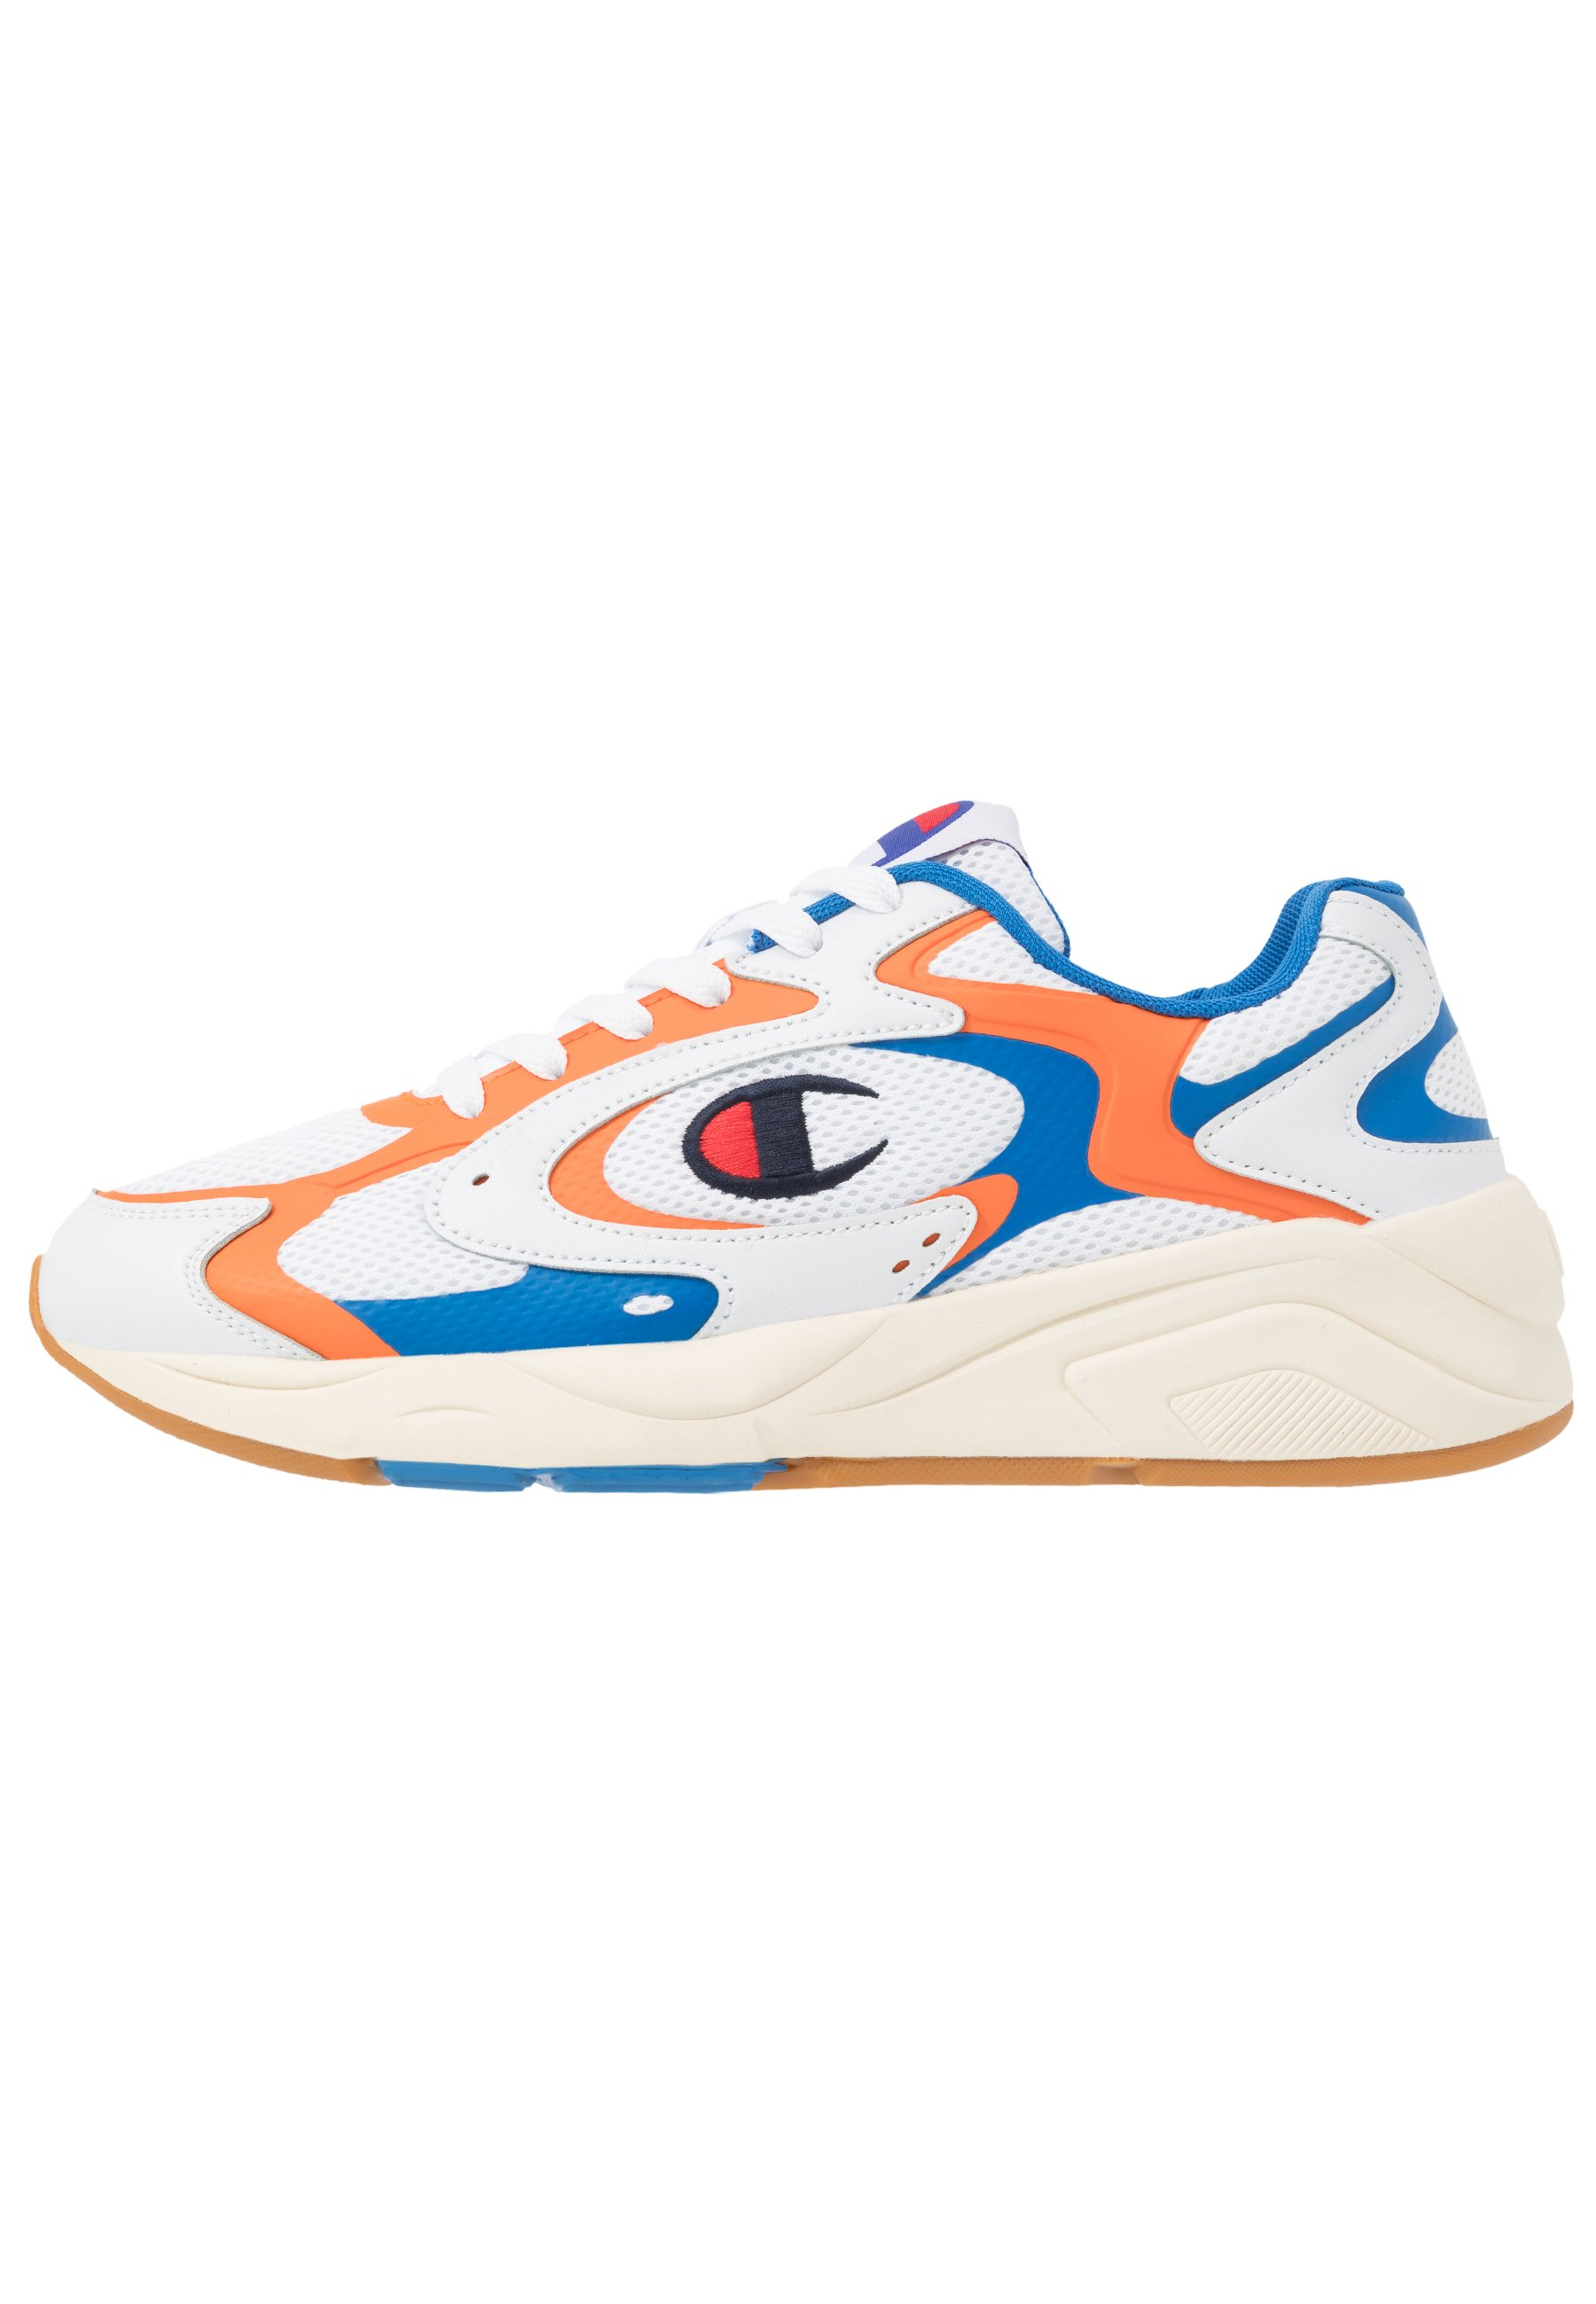 LOW CUT SHOE LEXINGTON 200 Gym & träningskor whiteroyal blueorange